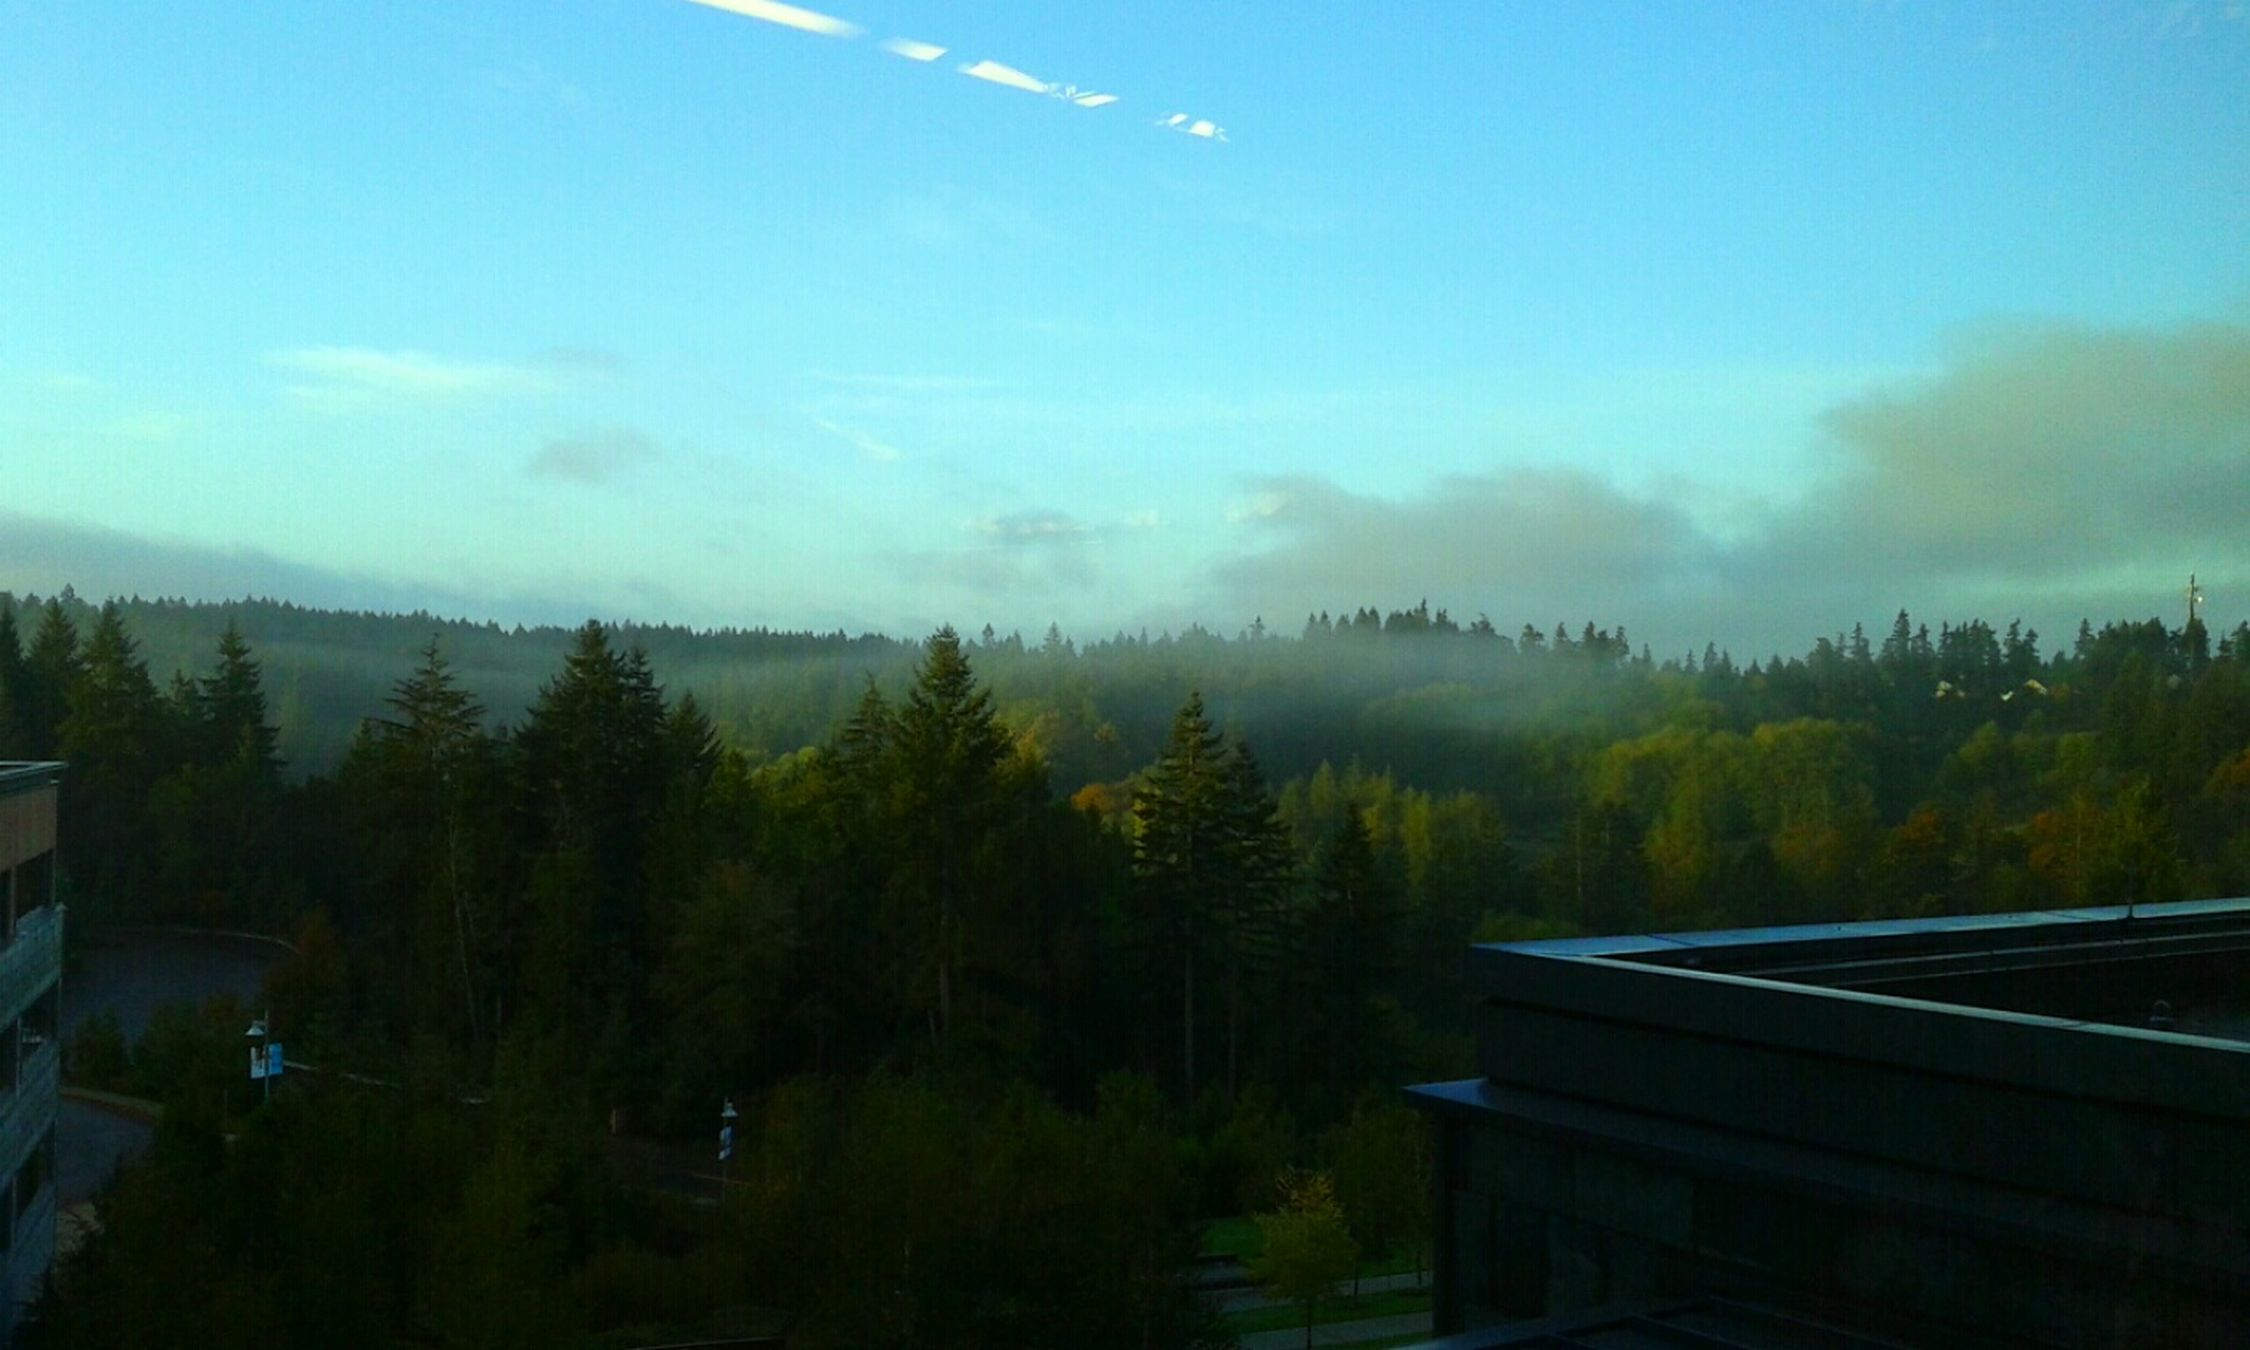 At Hospital Taking Photos Open Edit Pacific Northwest  Looking Out Of The Window Gig Harbor Landscape